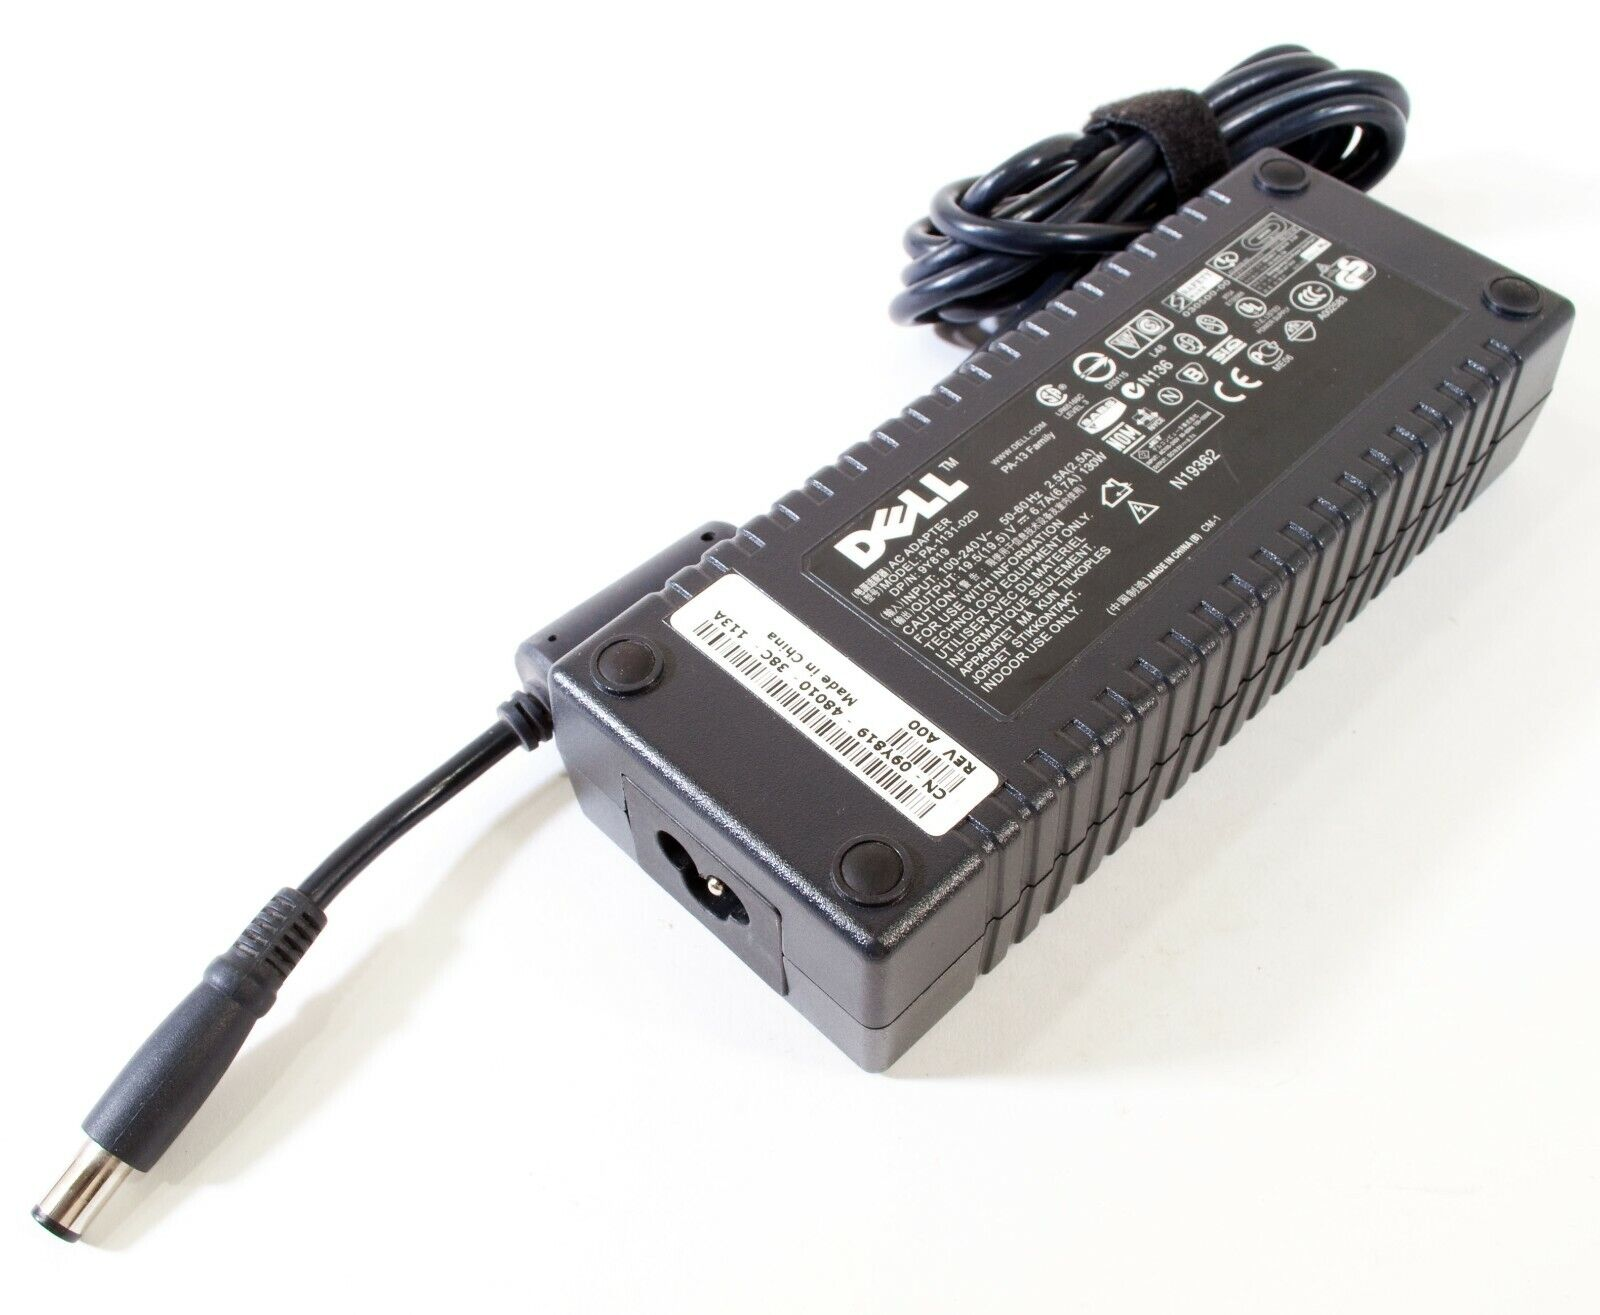 Dell PA-1131-02D AC Adapter 19.5V 6.7A Original Charger I.T.E. Power Supply Q992